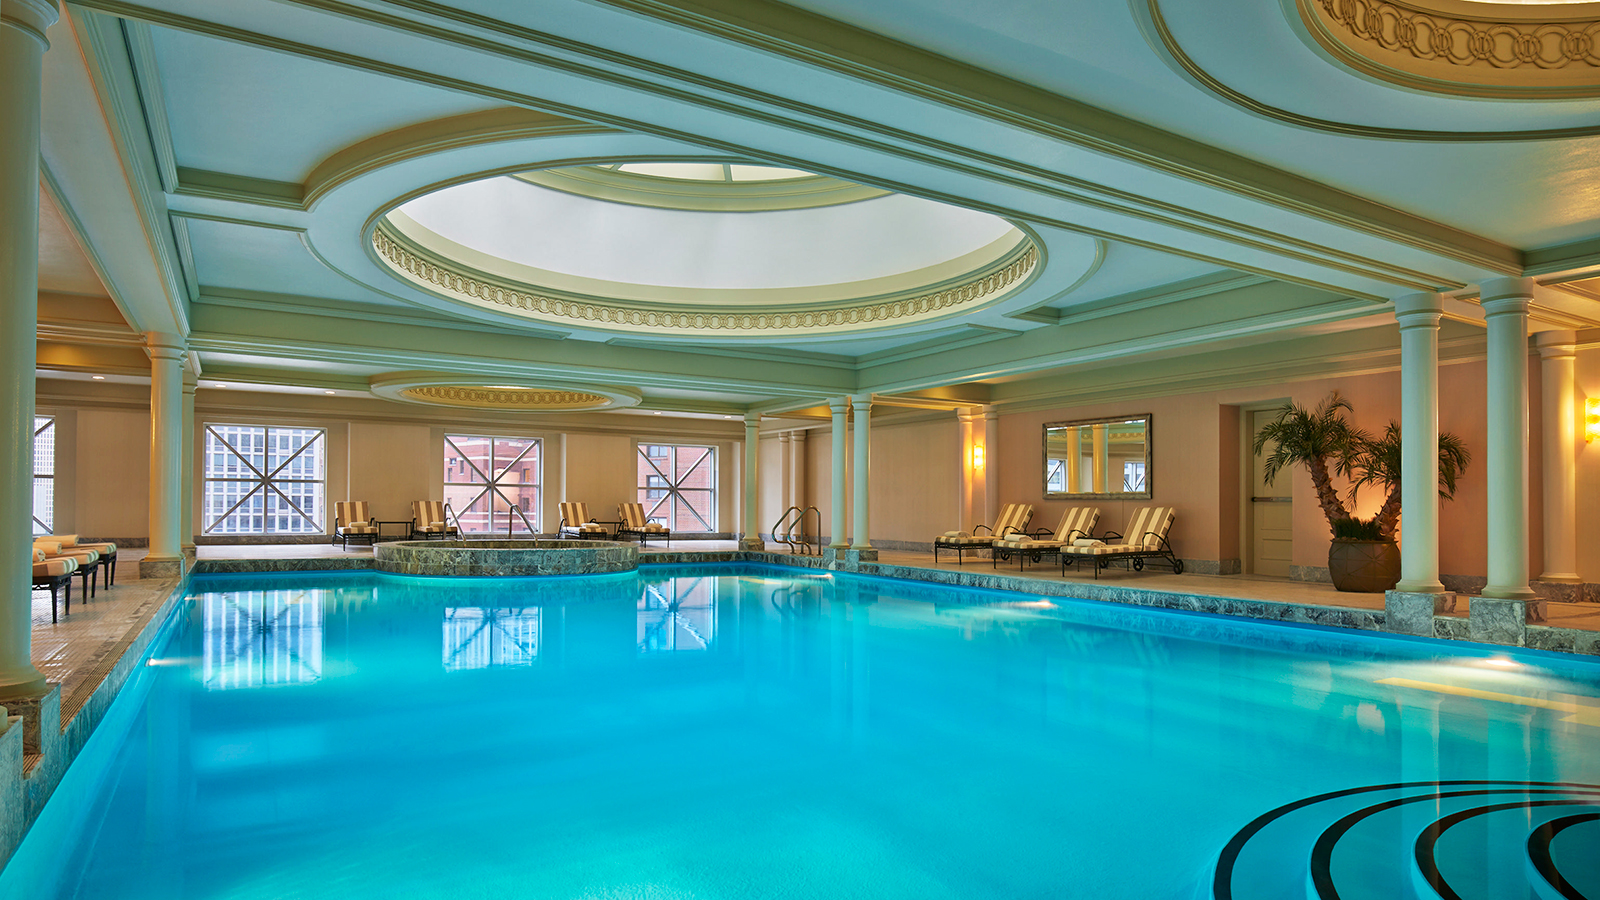 Chicago Hotel With Indoor Pool